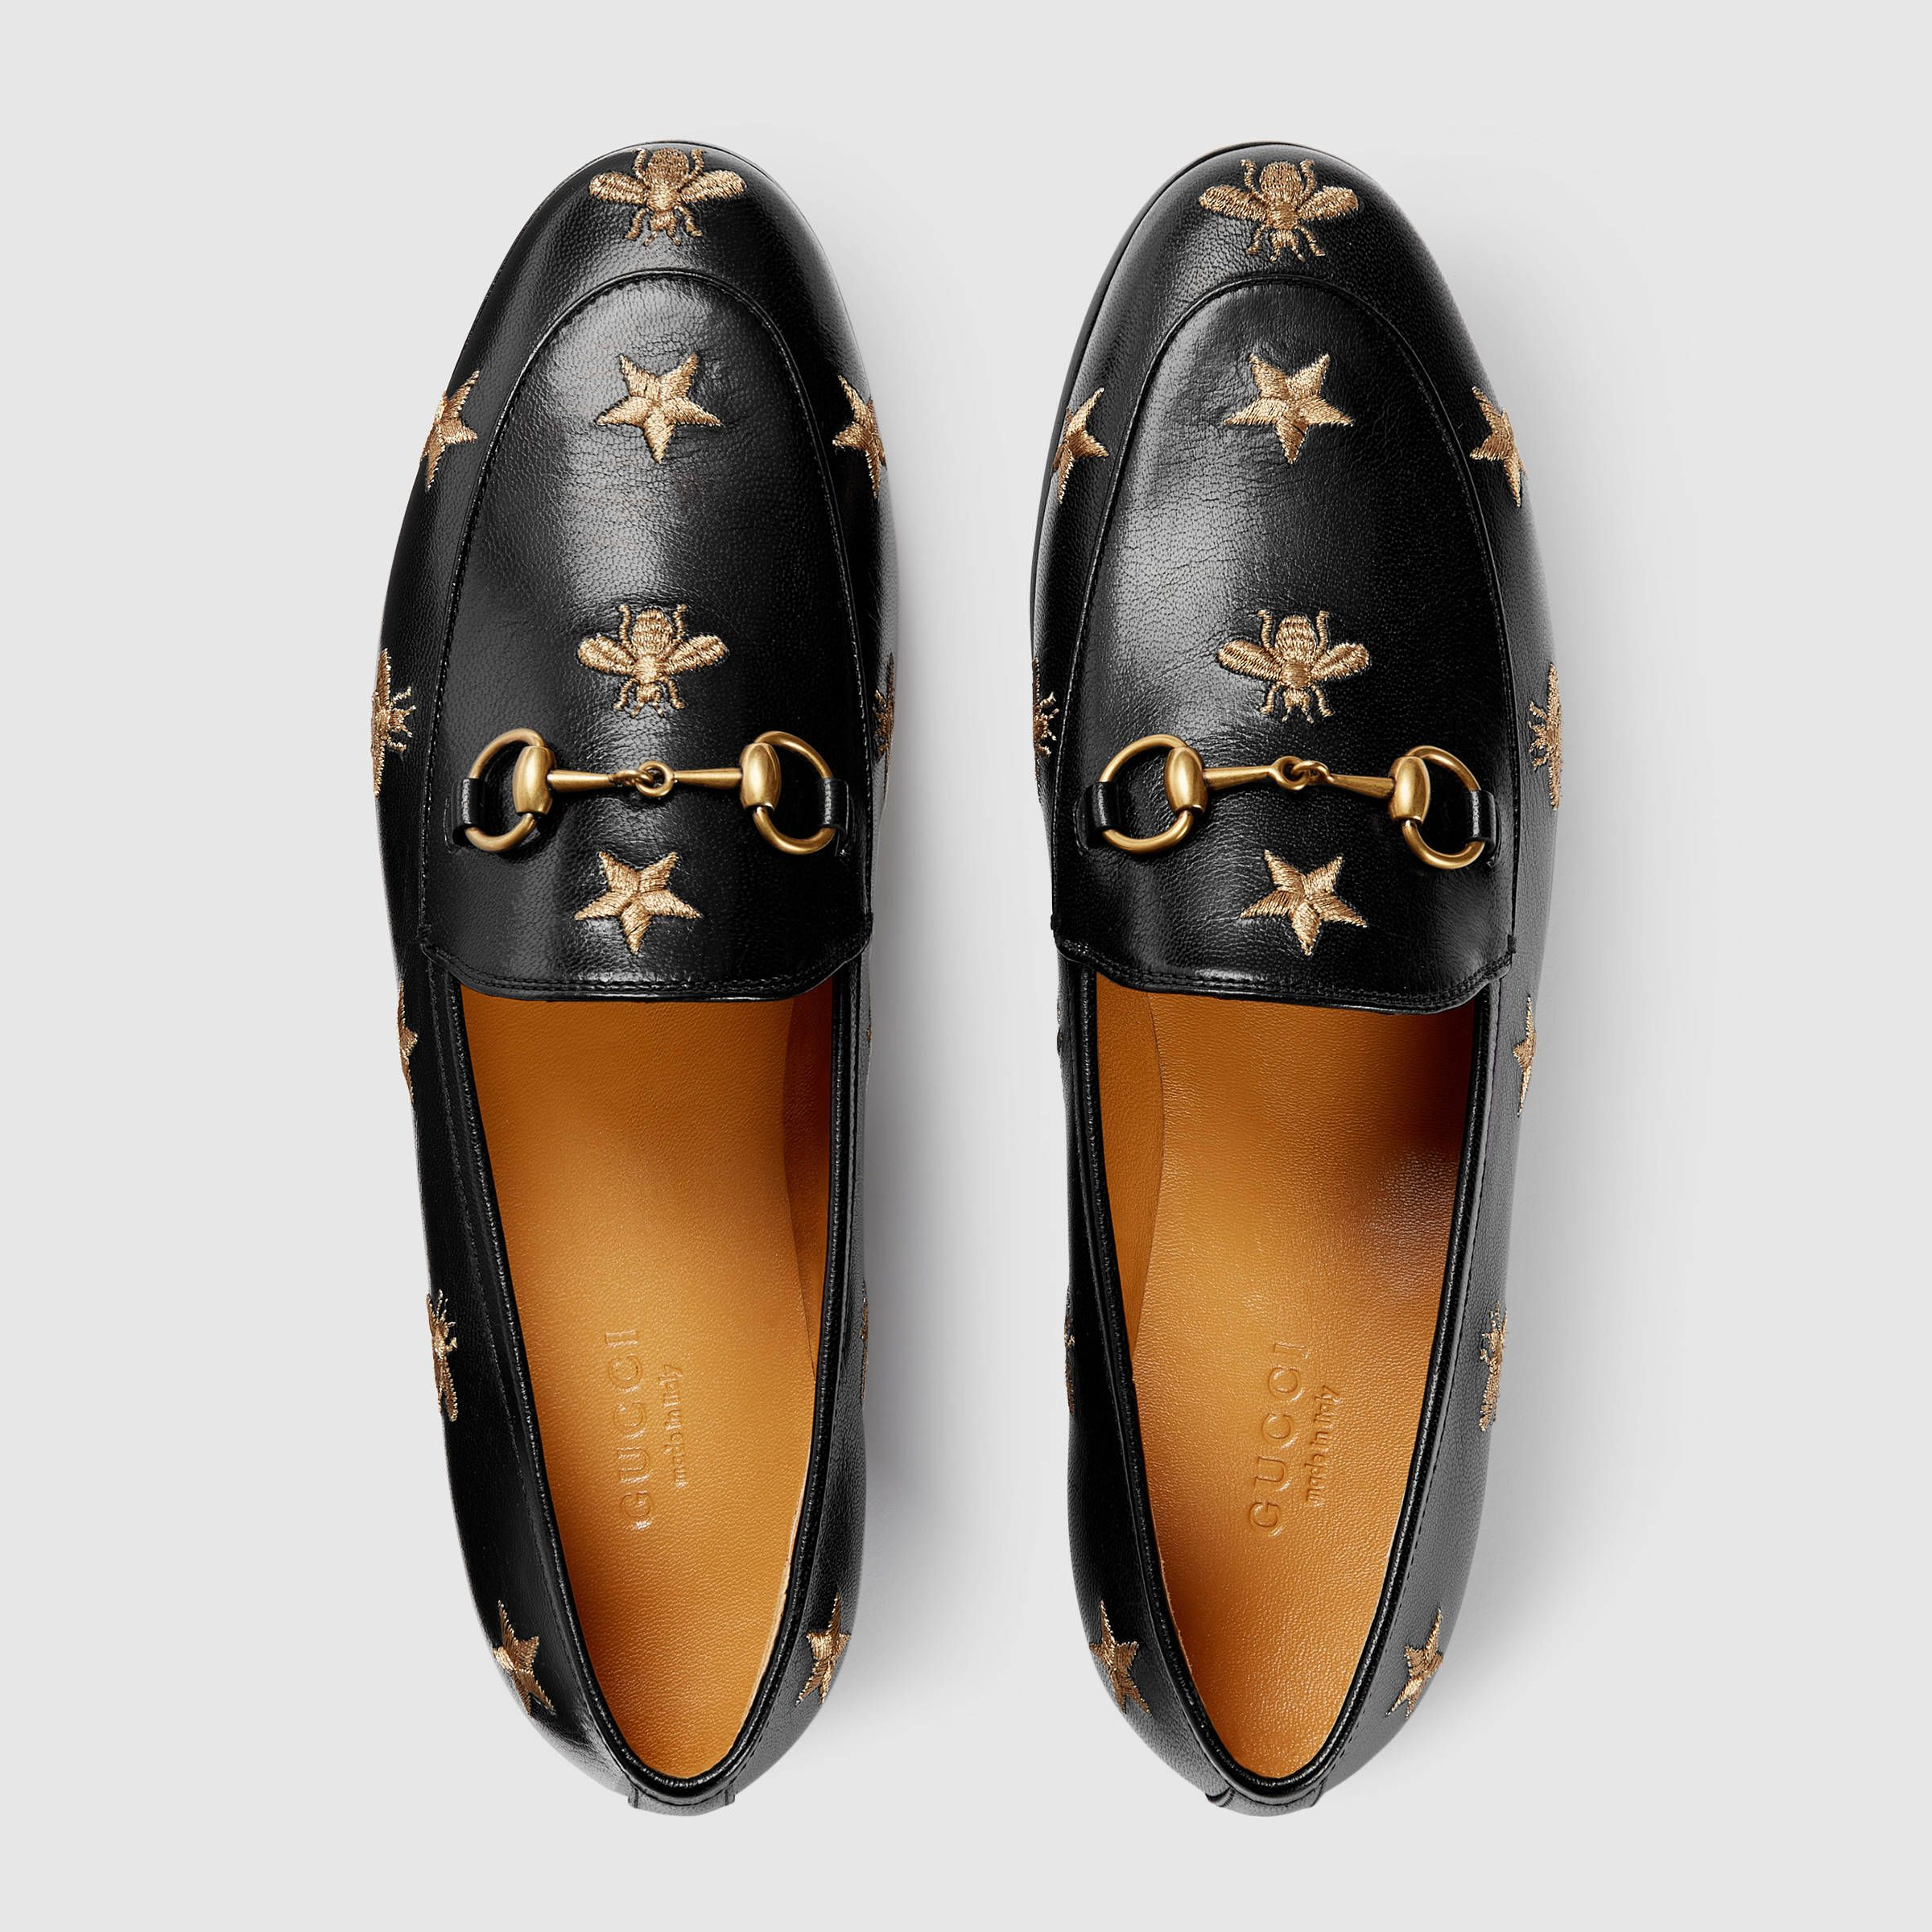 01eed76e329 Gucci Gucci Jordaan embroidered leather loafer Detail 3